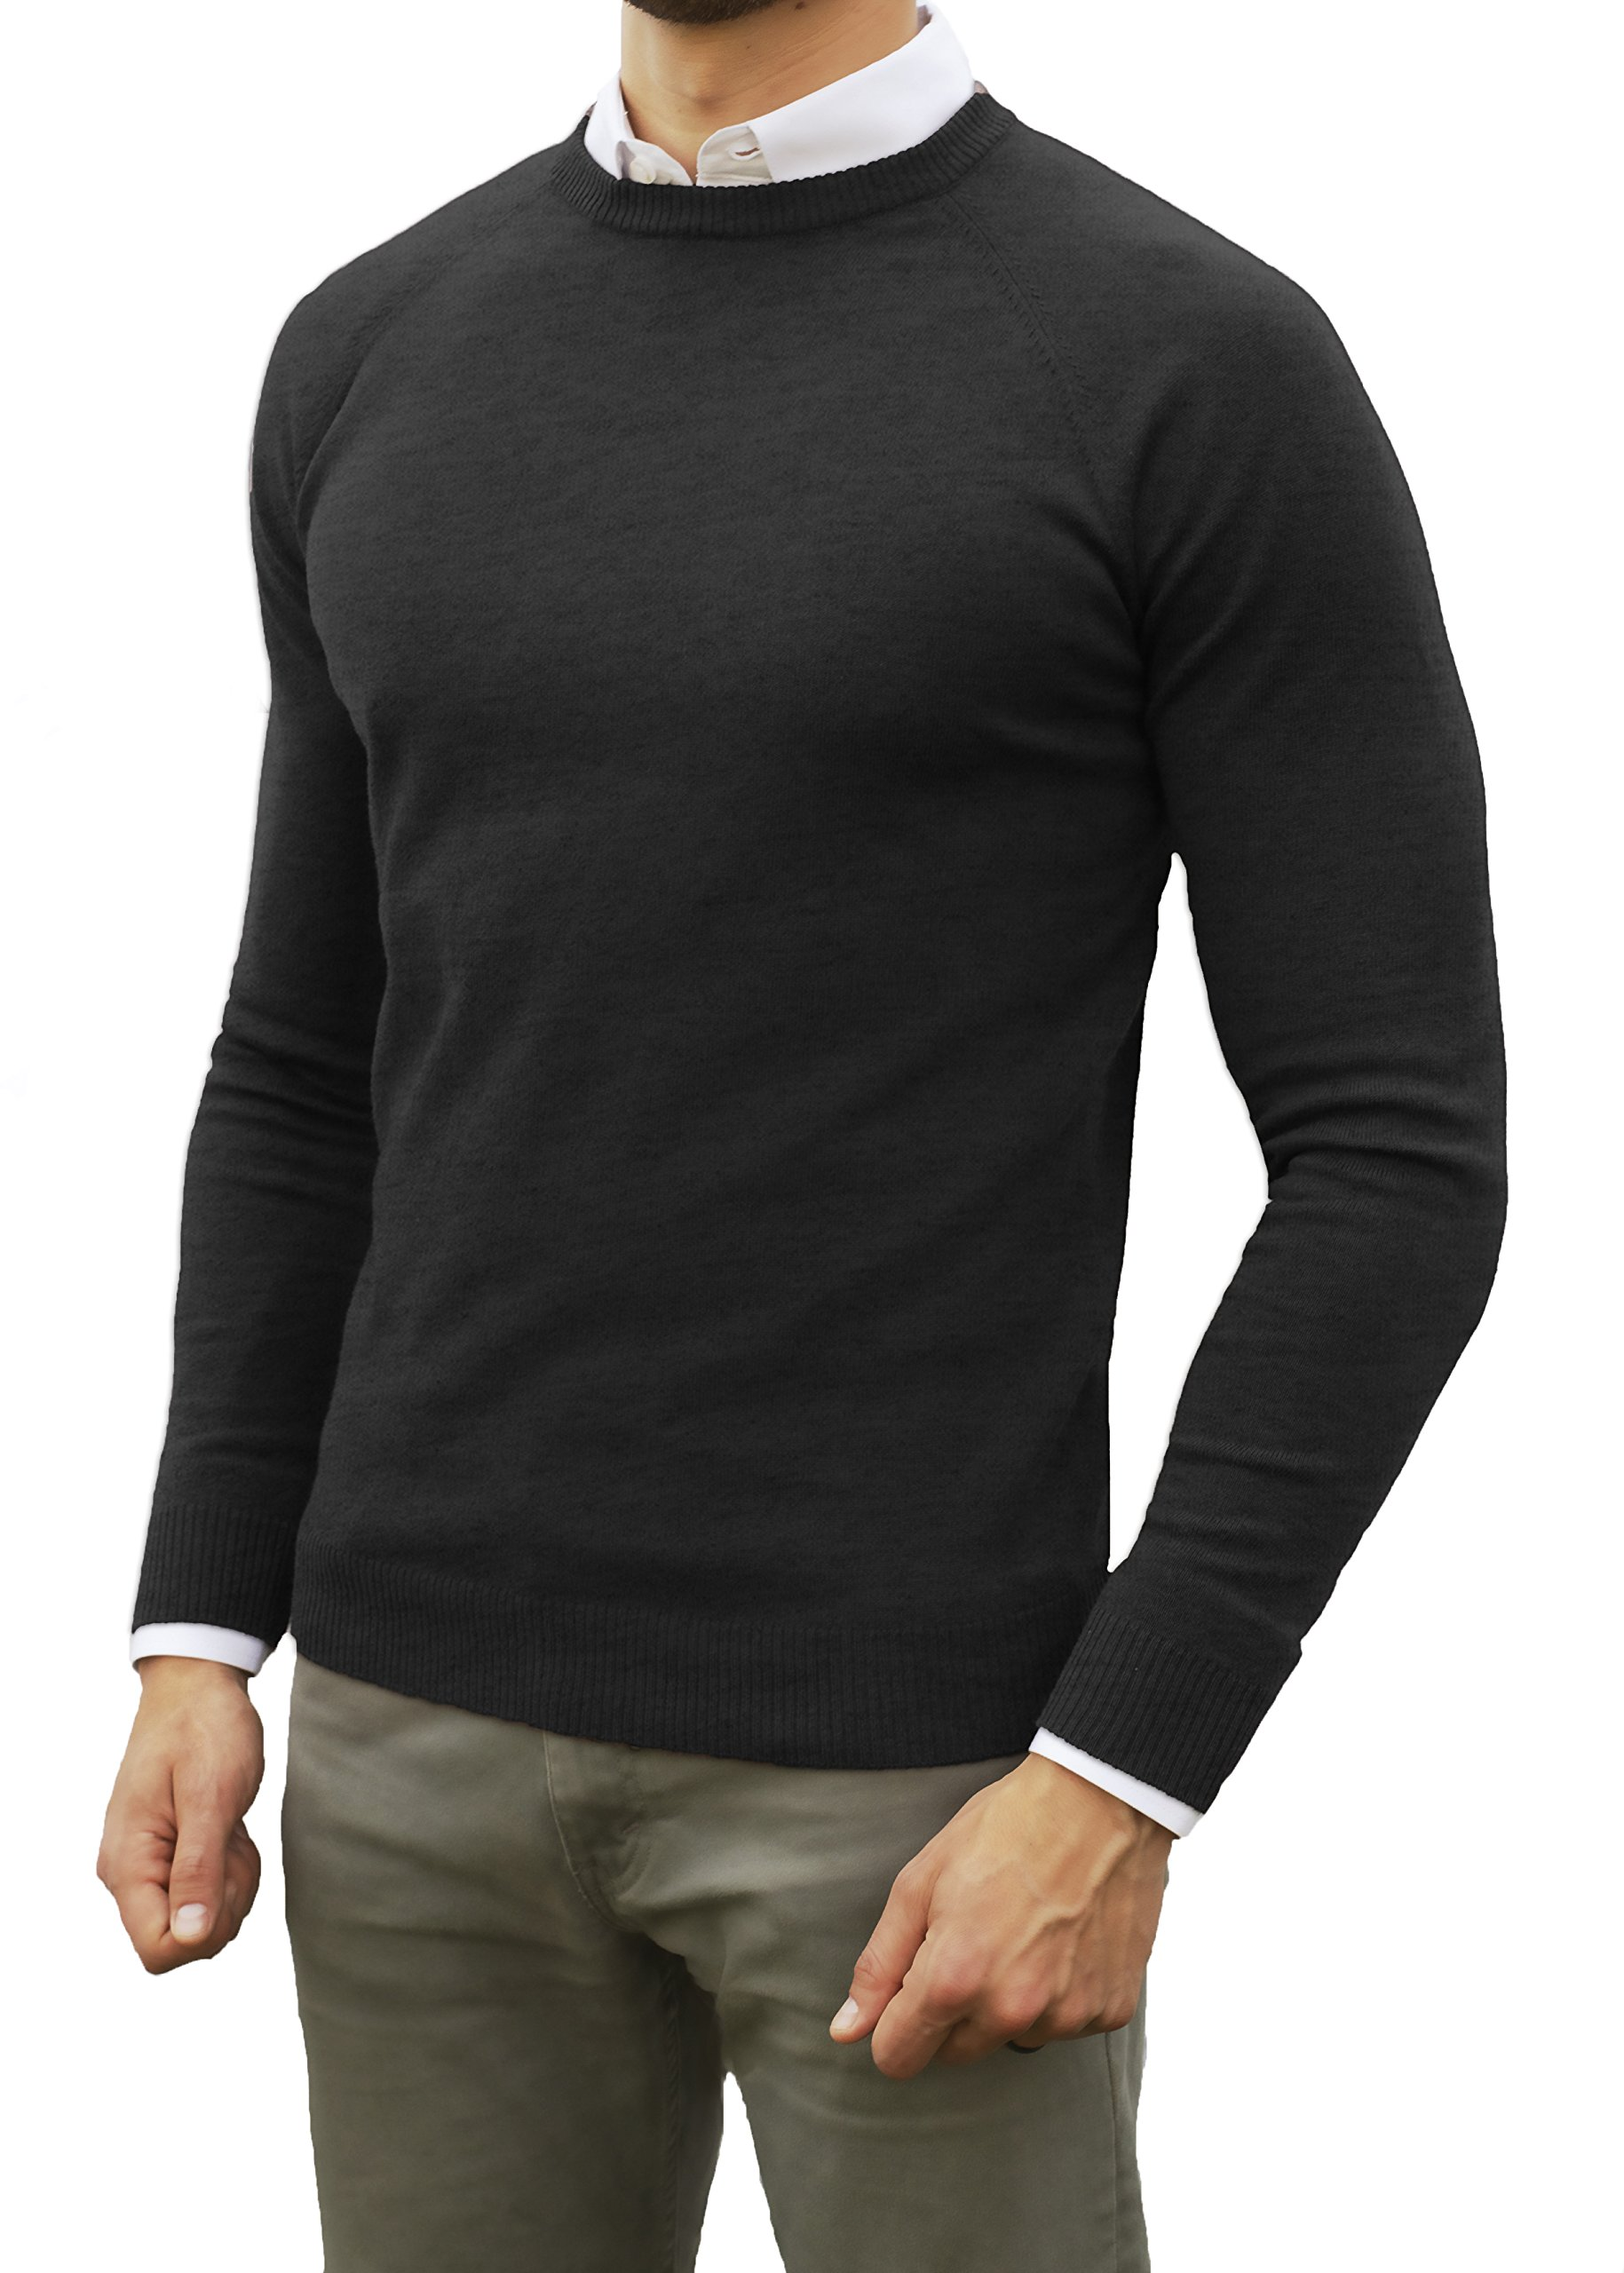 Comfortably Collared Men's Perfect Slim Fit Light Weight Crew Neck Pullover Sweater (Large, Black)